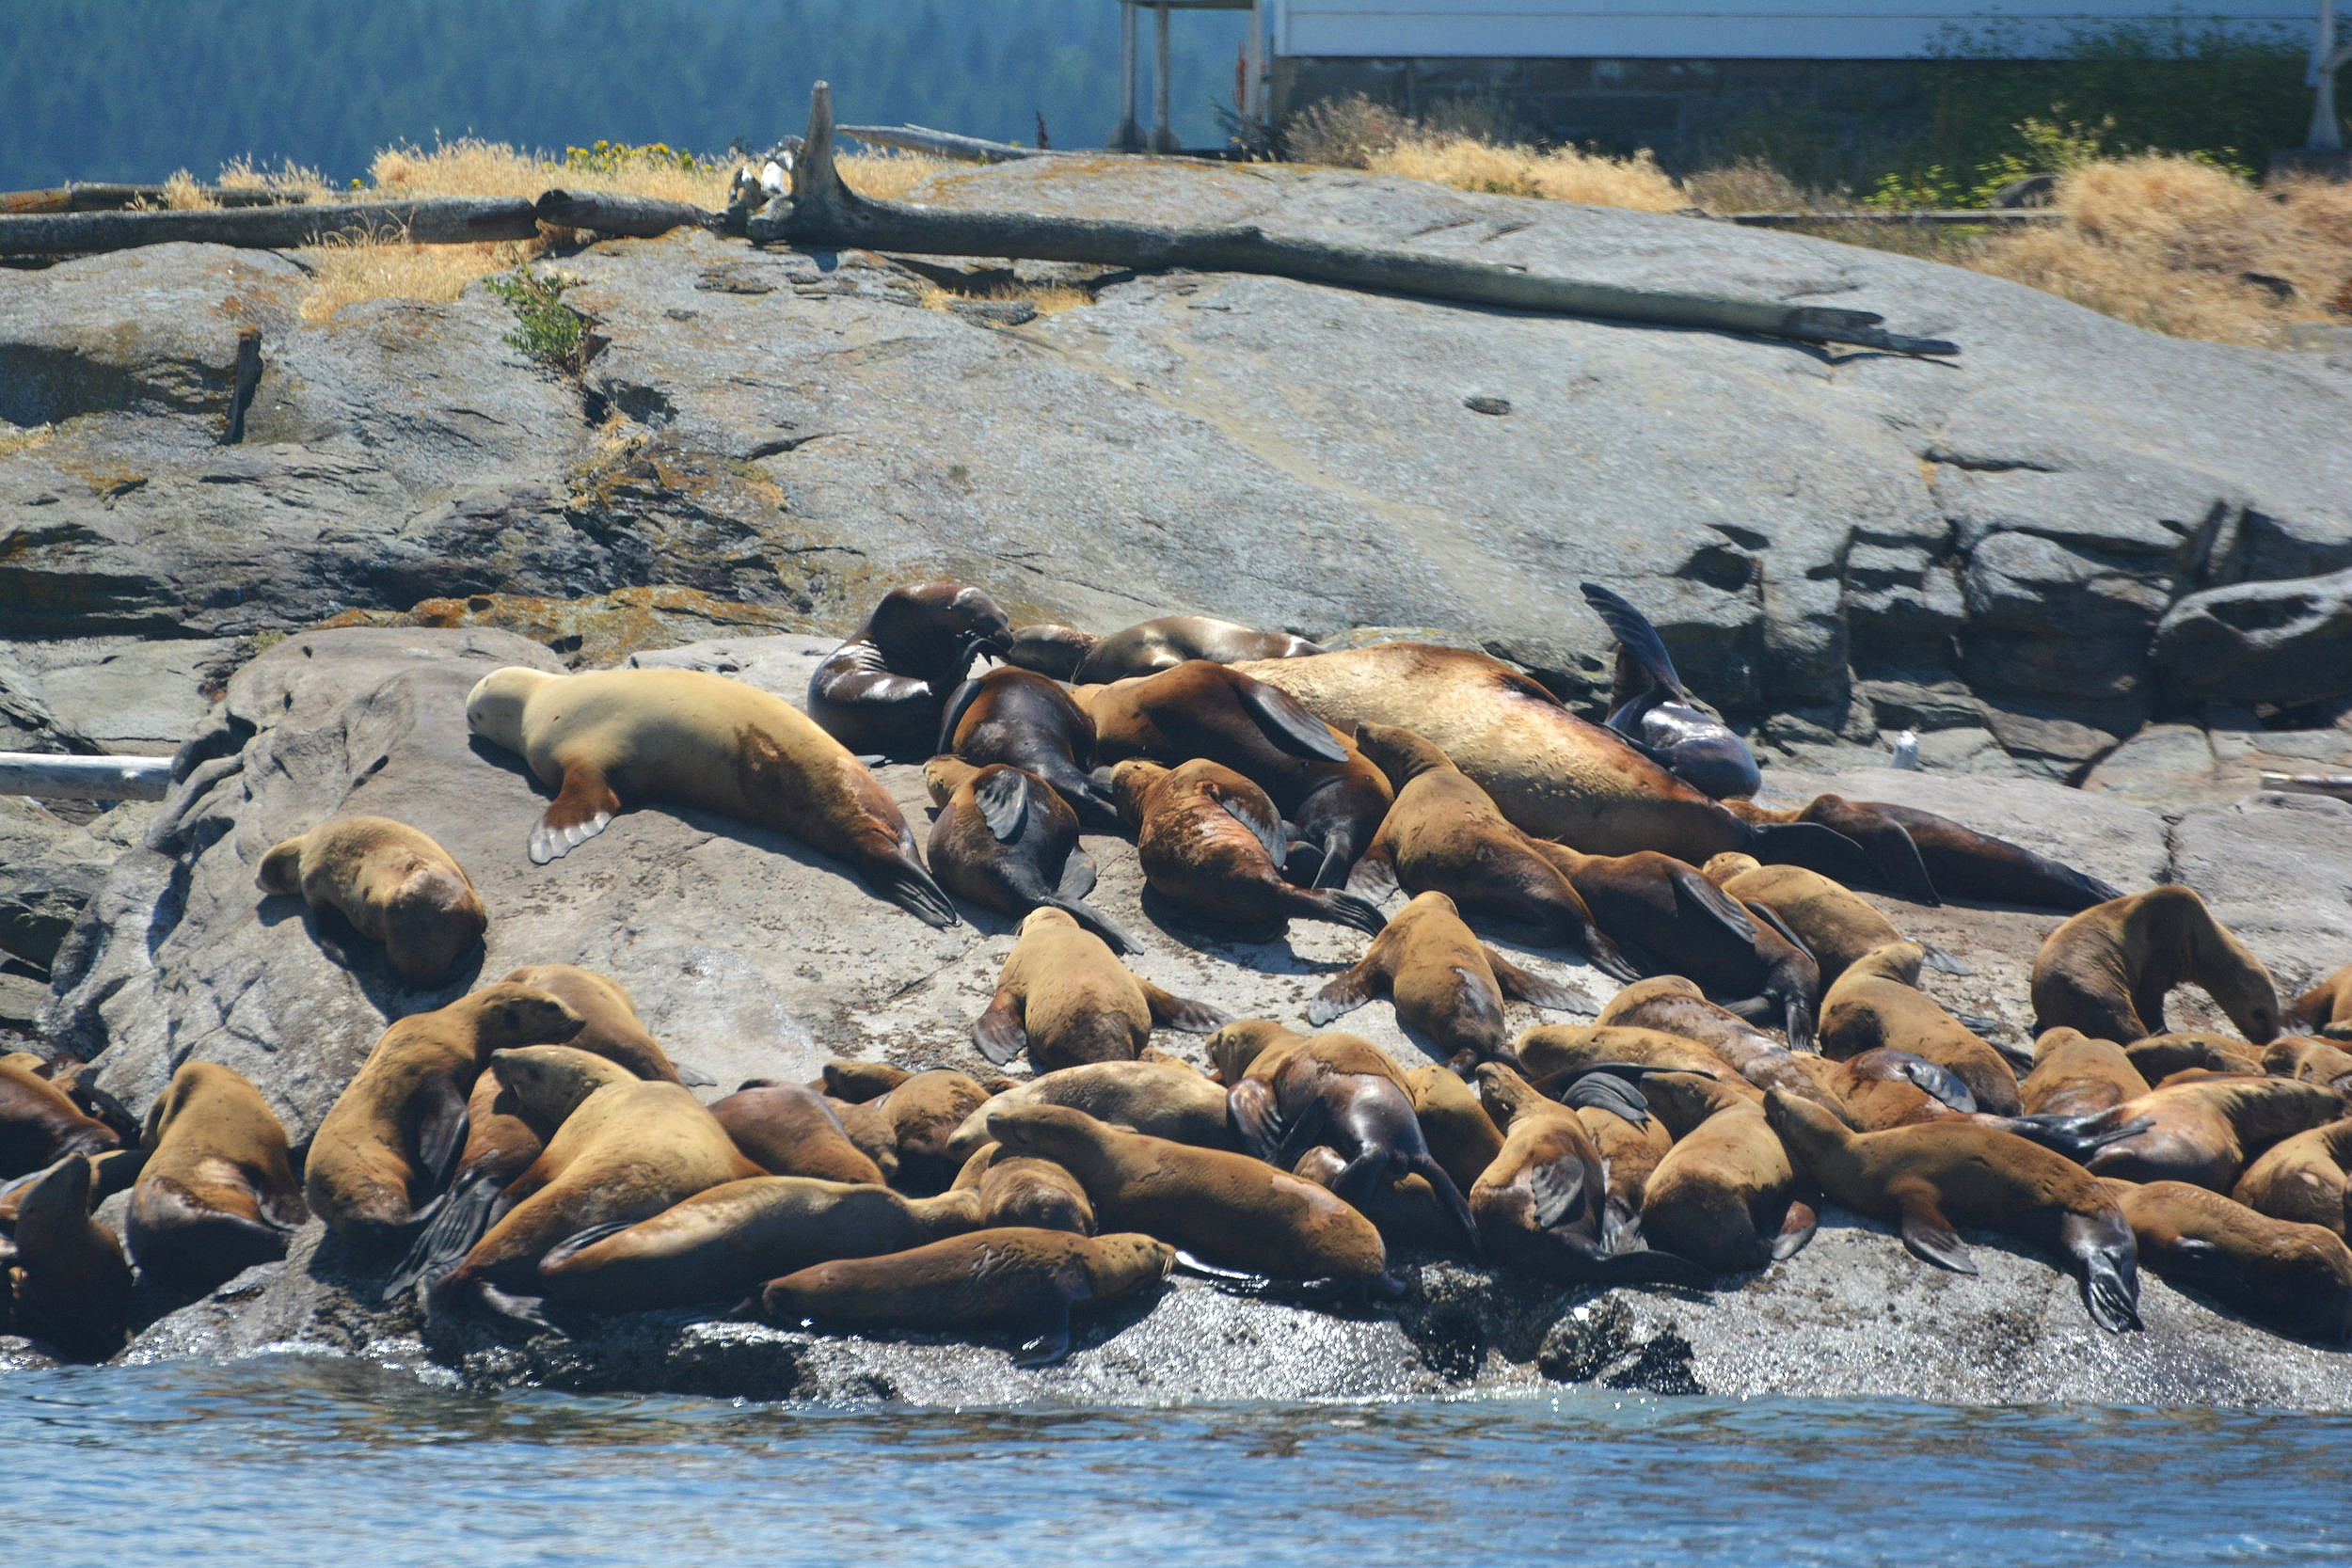 Steller Sea Lions working on their tans. Photo by Jilann Lechner.